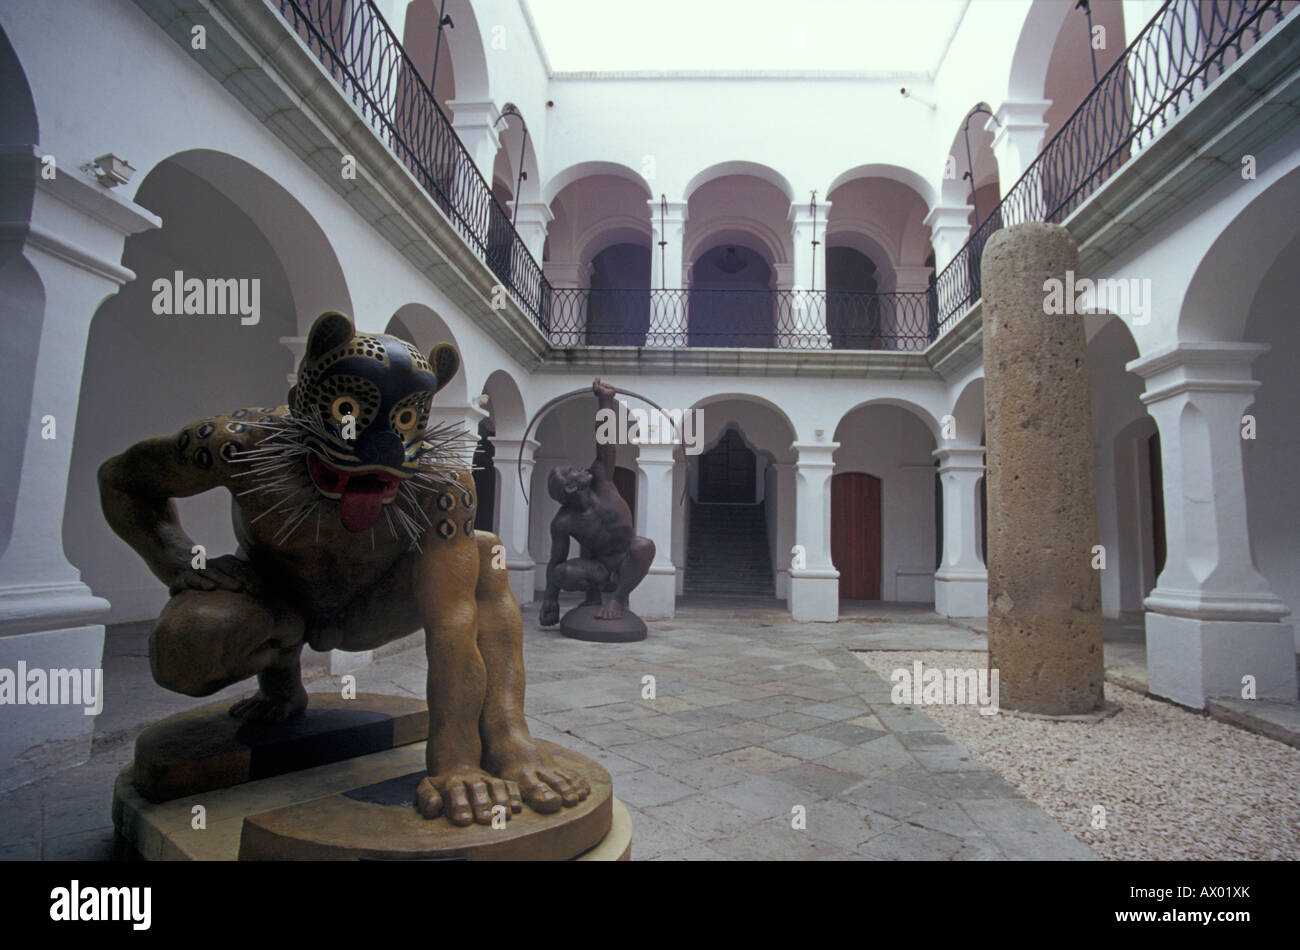 sculptures-in-the-courtyard-of-the-museu